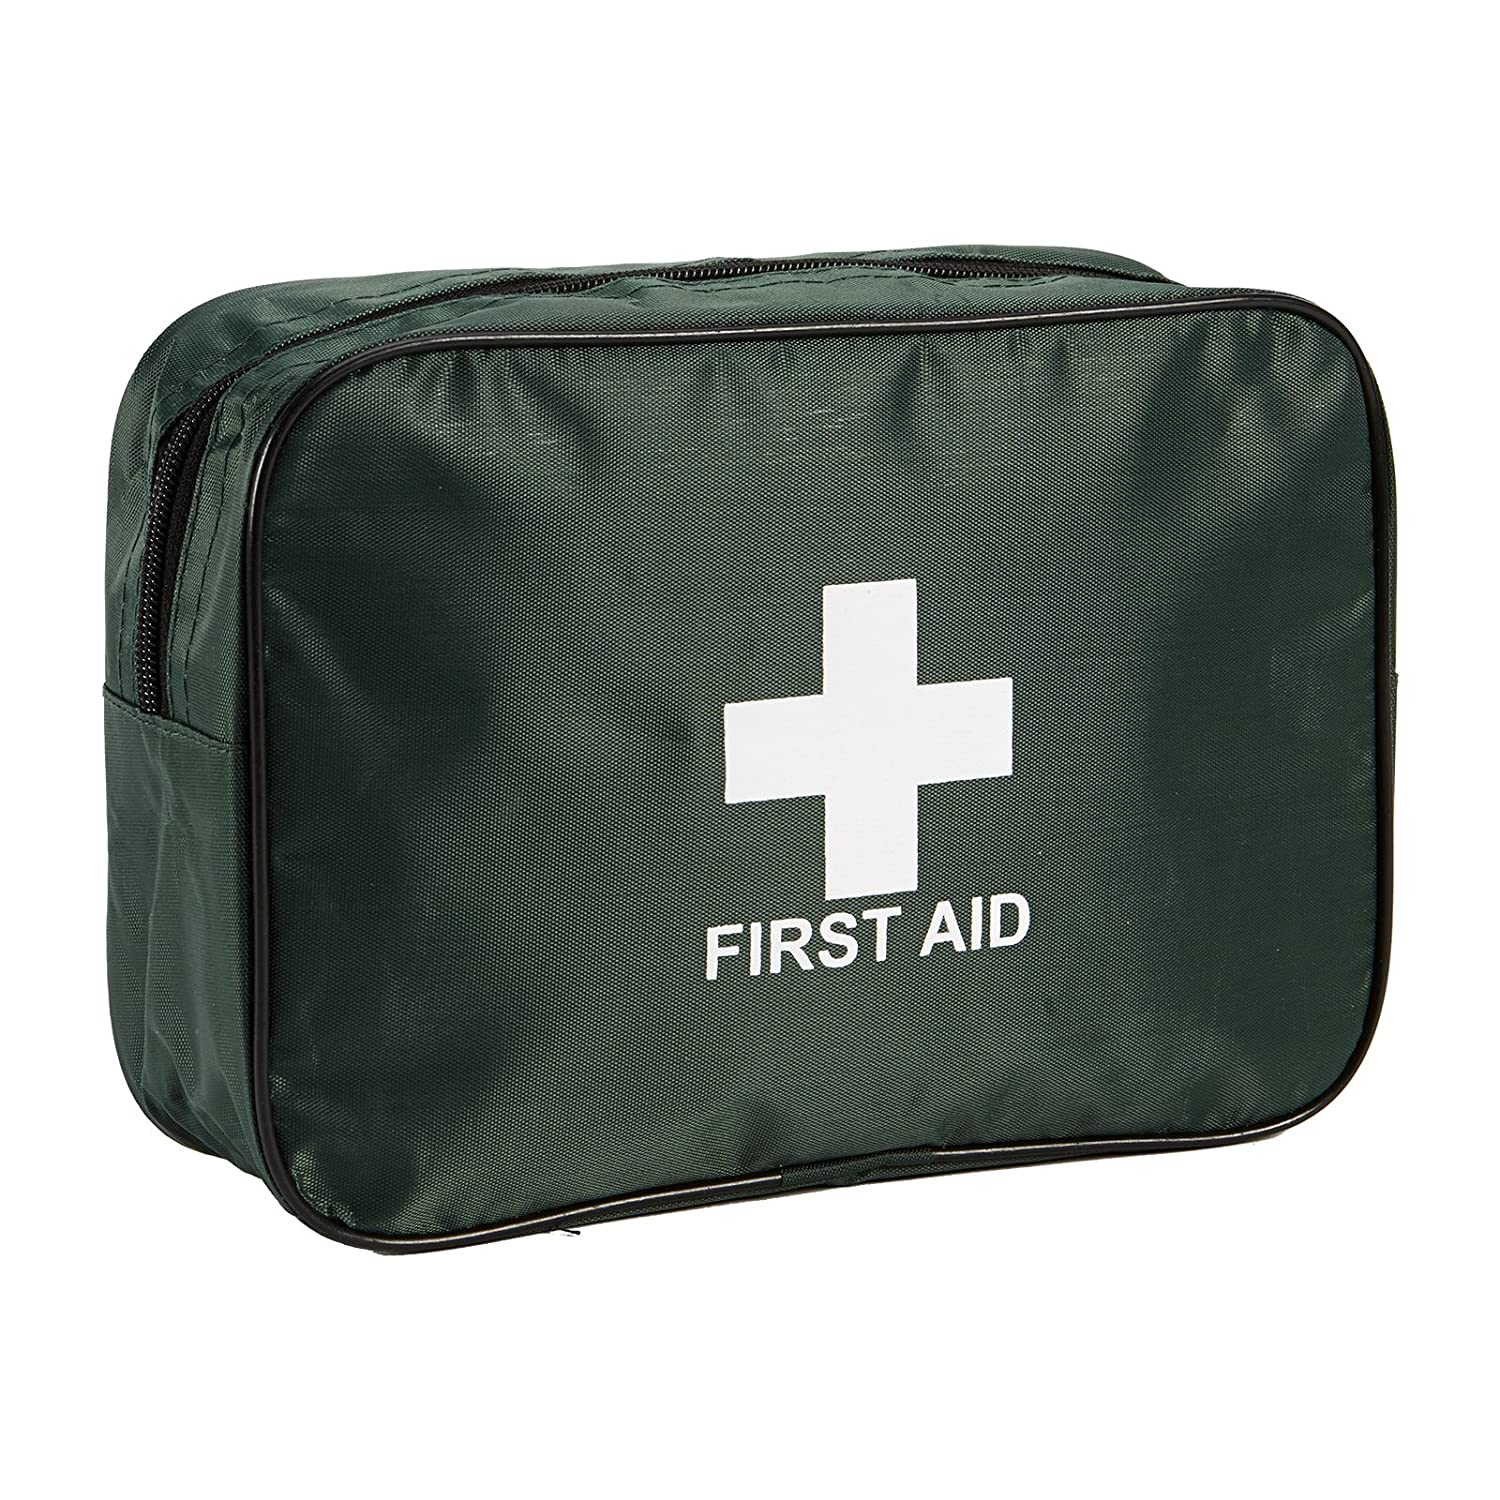 First Aid Bags, One Size Steroplast 40G